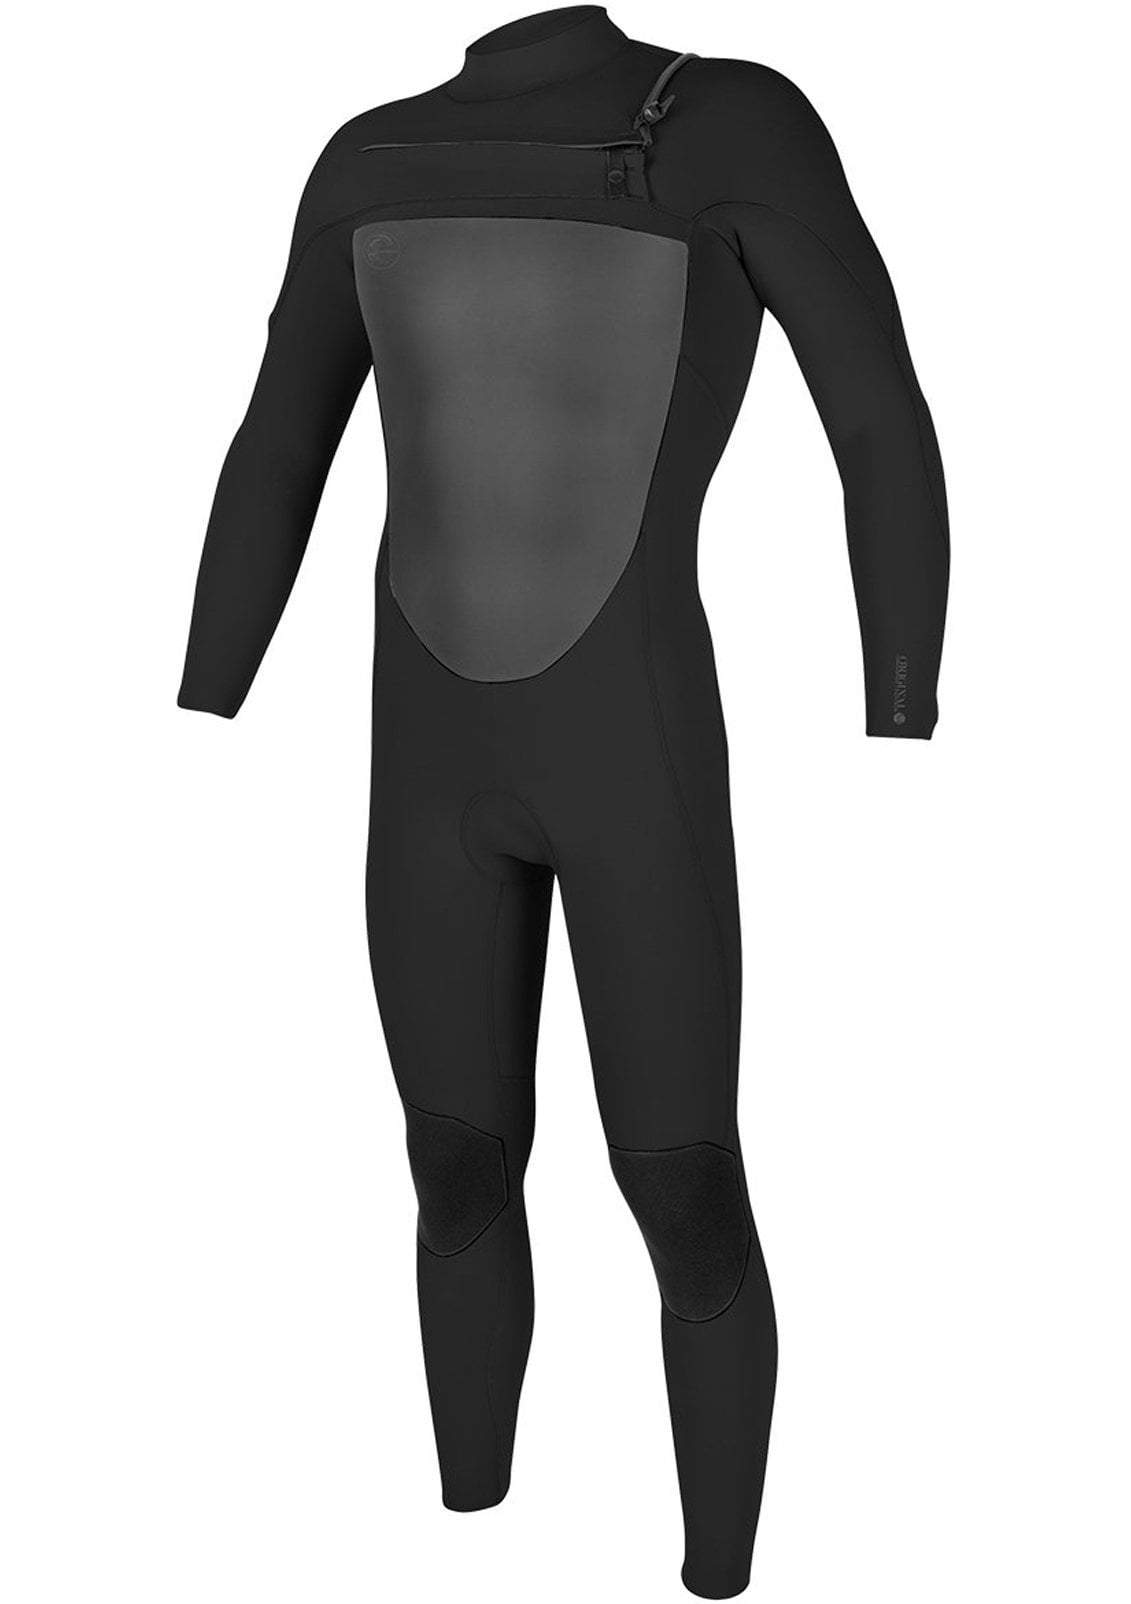 O'Riginal Men's FUZE 4/3 Fullsuit Surfing Wetsuit